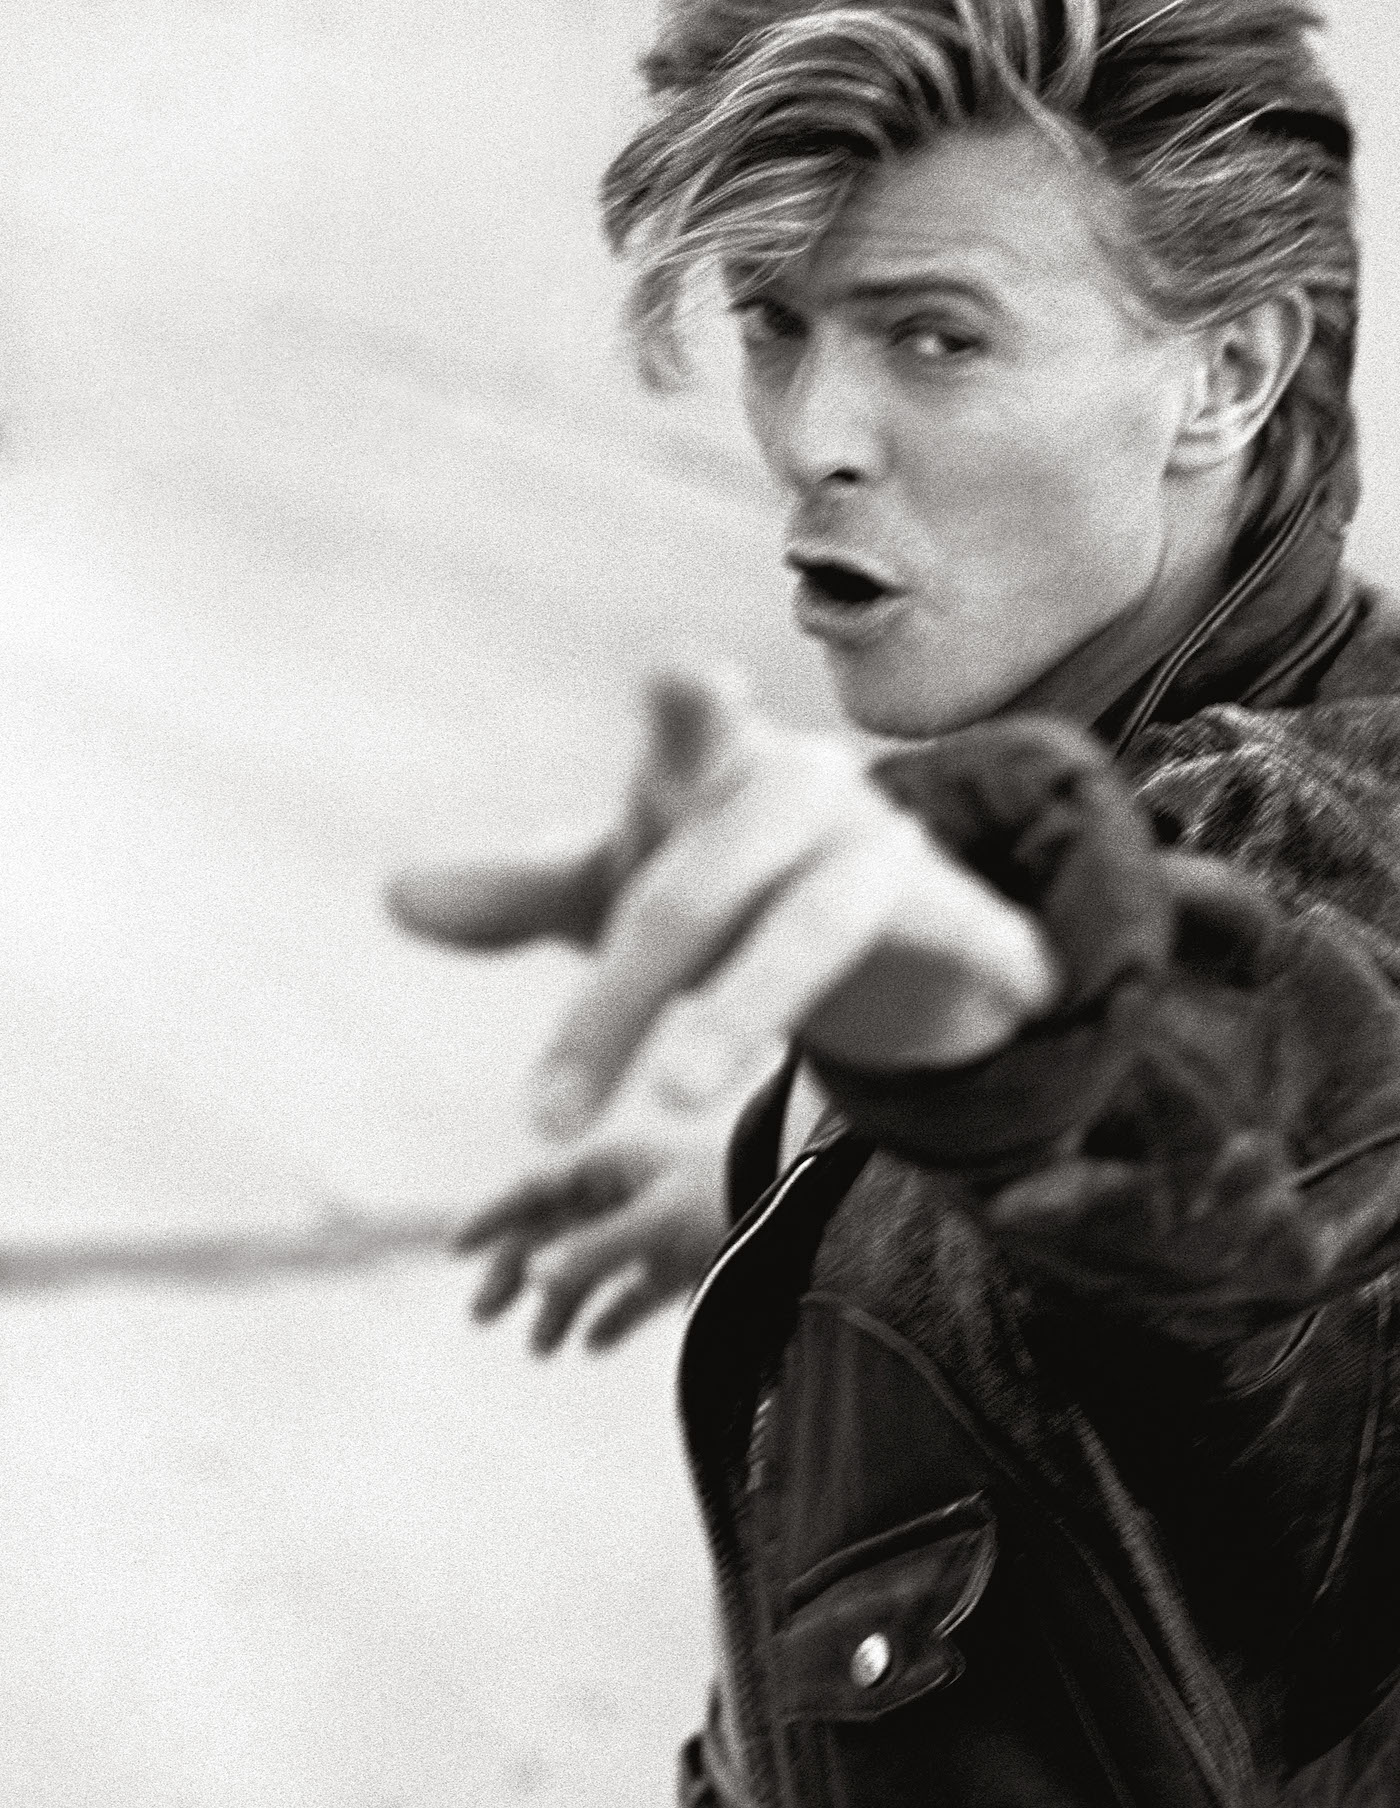 David Bowie III, Los Angeles, by Herb Ritts